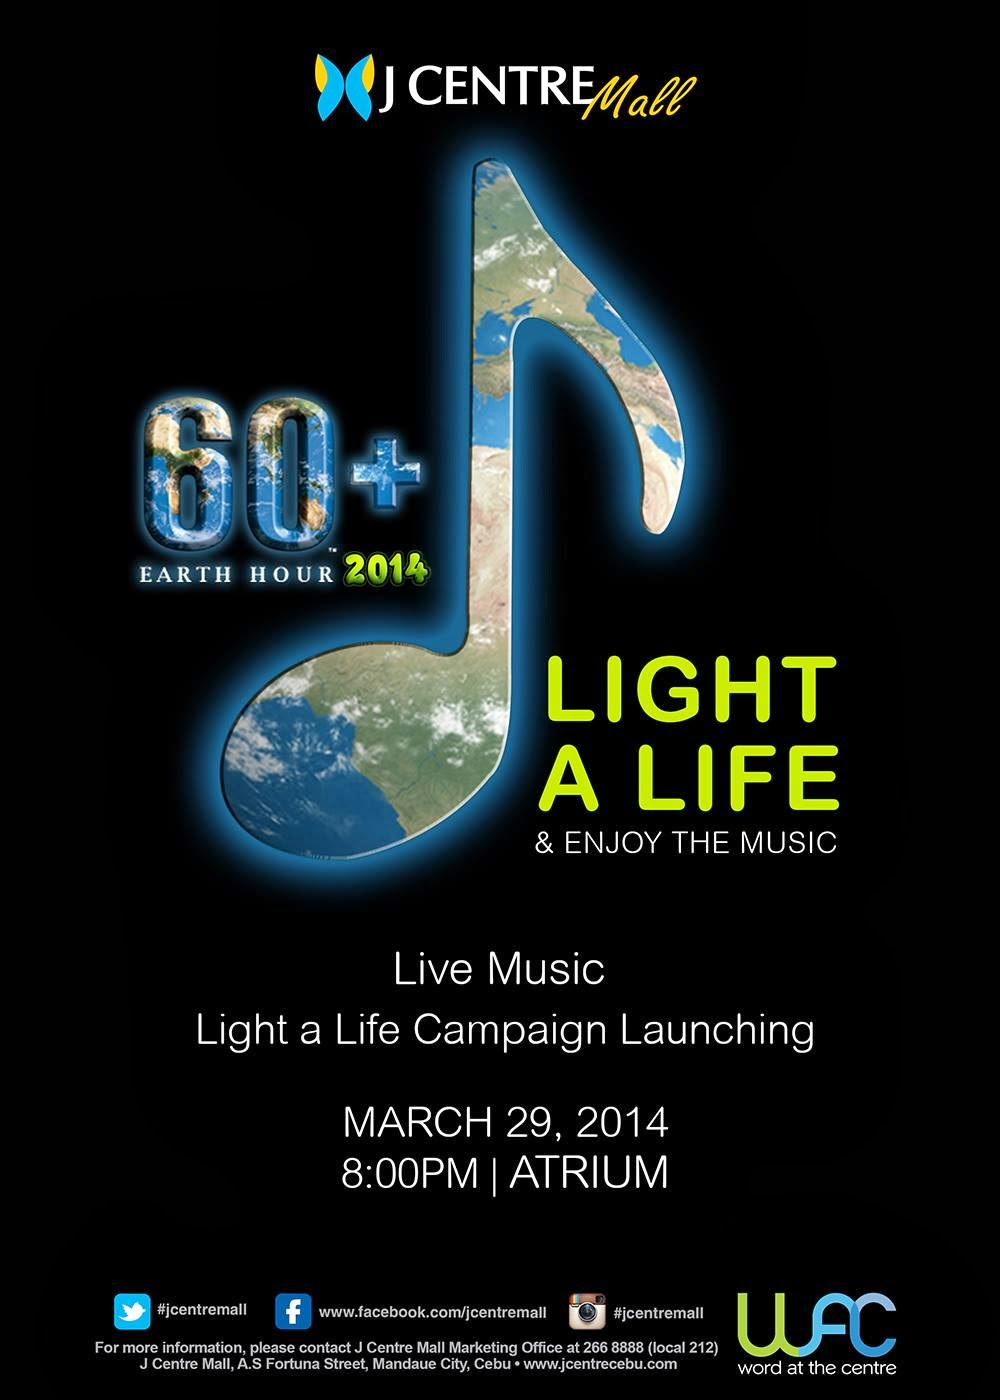 Earth_hour_2014_J_Centre_Mall